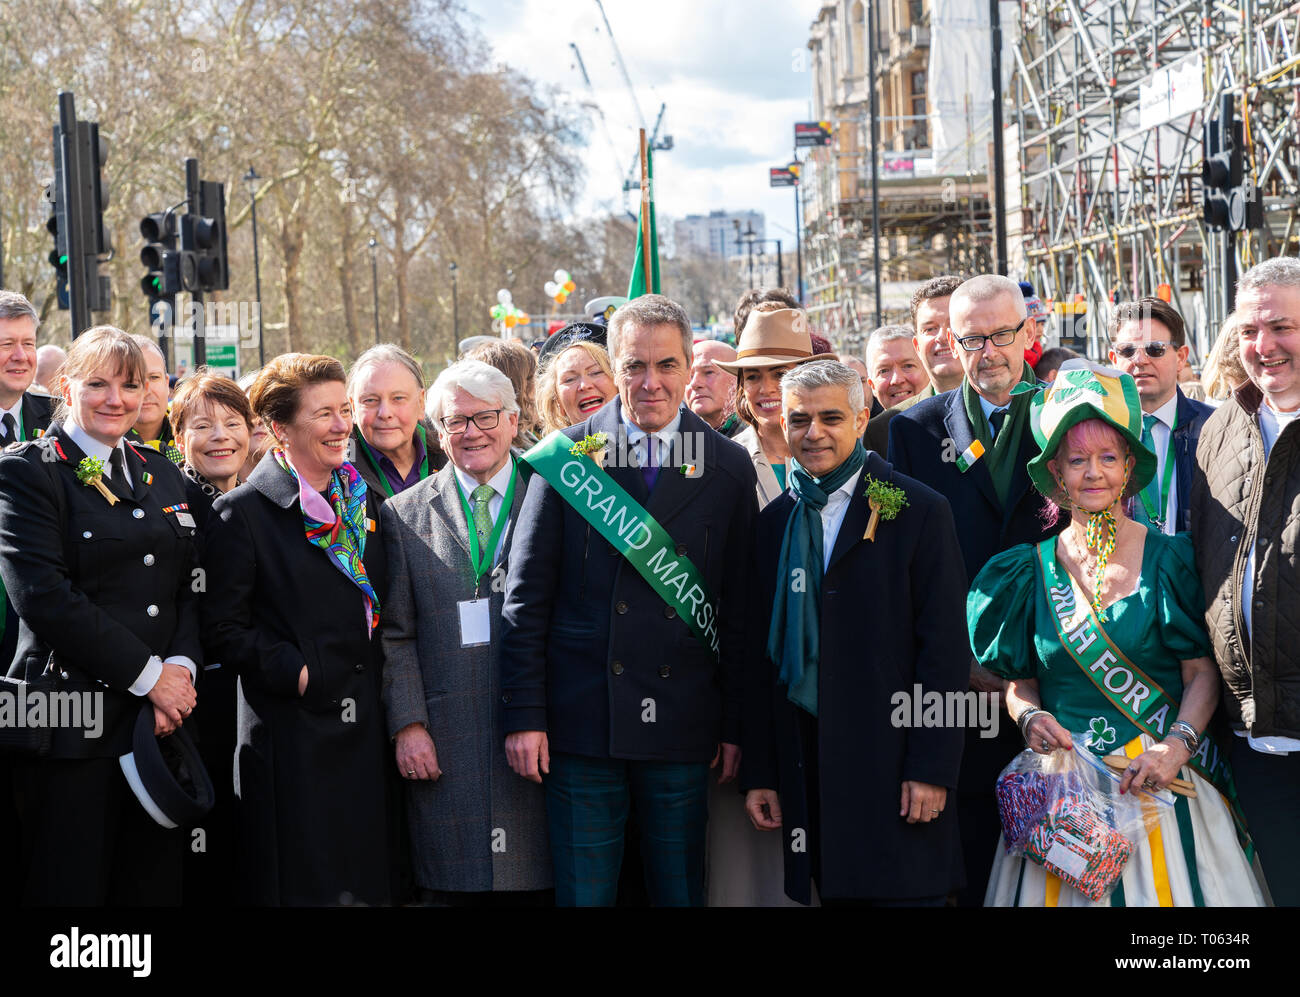 London, UK. 17th Mar, 2019. James Nesbitt, Grand Marshall of the London St Patrick's Day parade with Mayor of London Sadiq Khan. Credit: AndKa/Alamy Live News - Stock Image